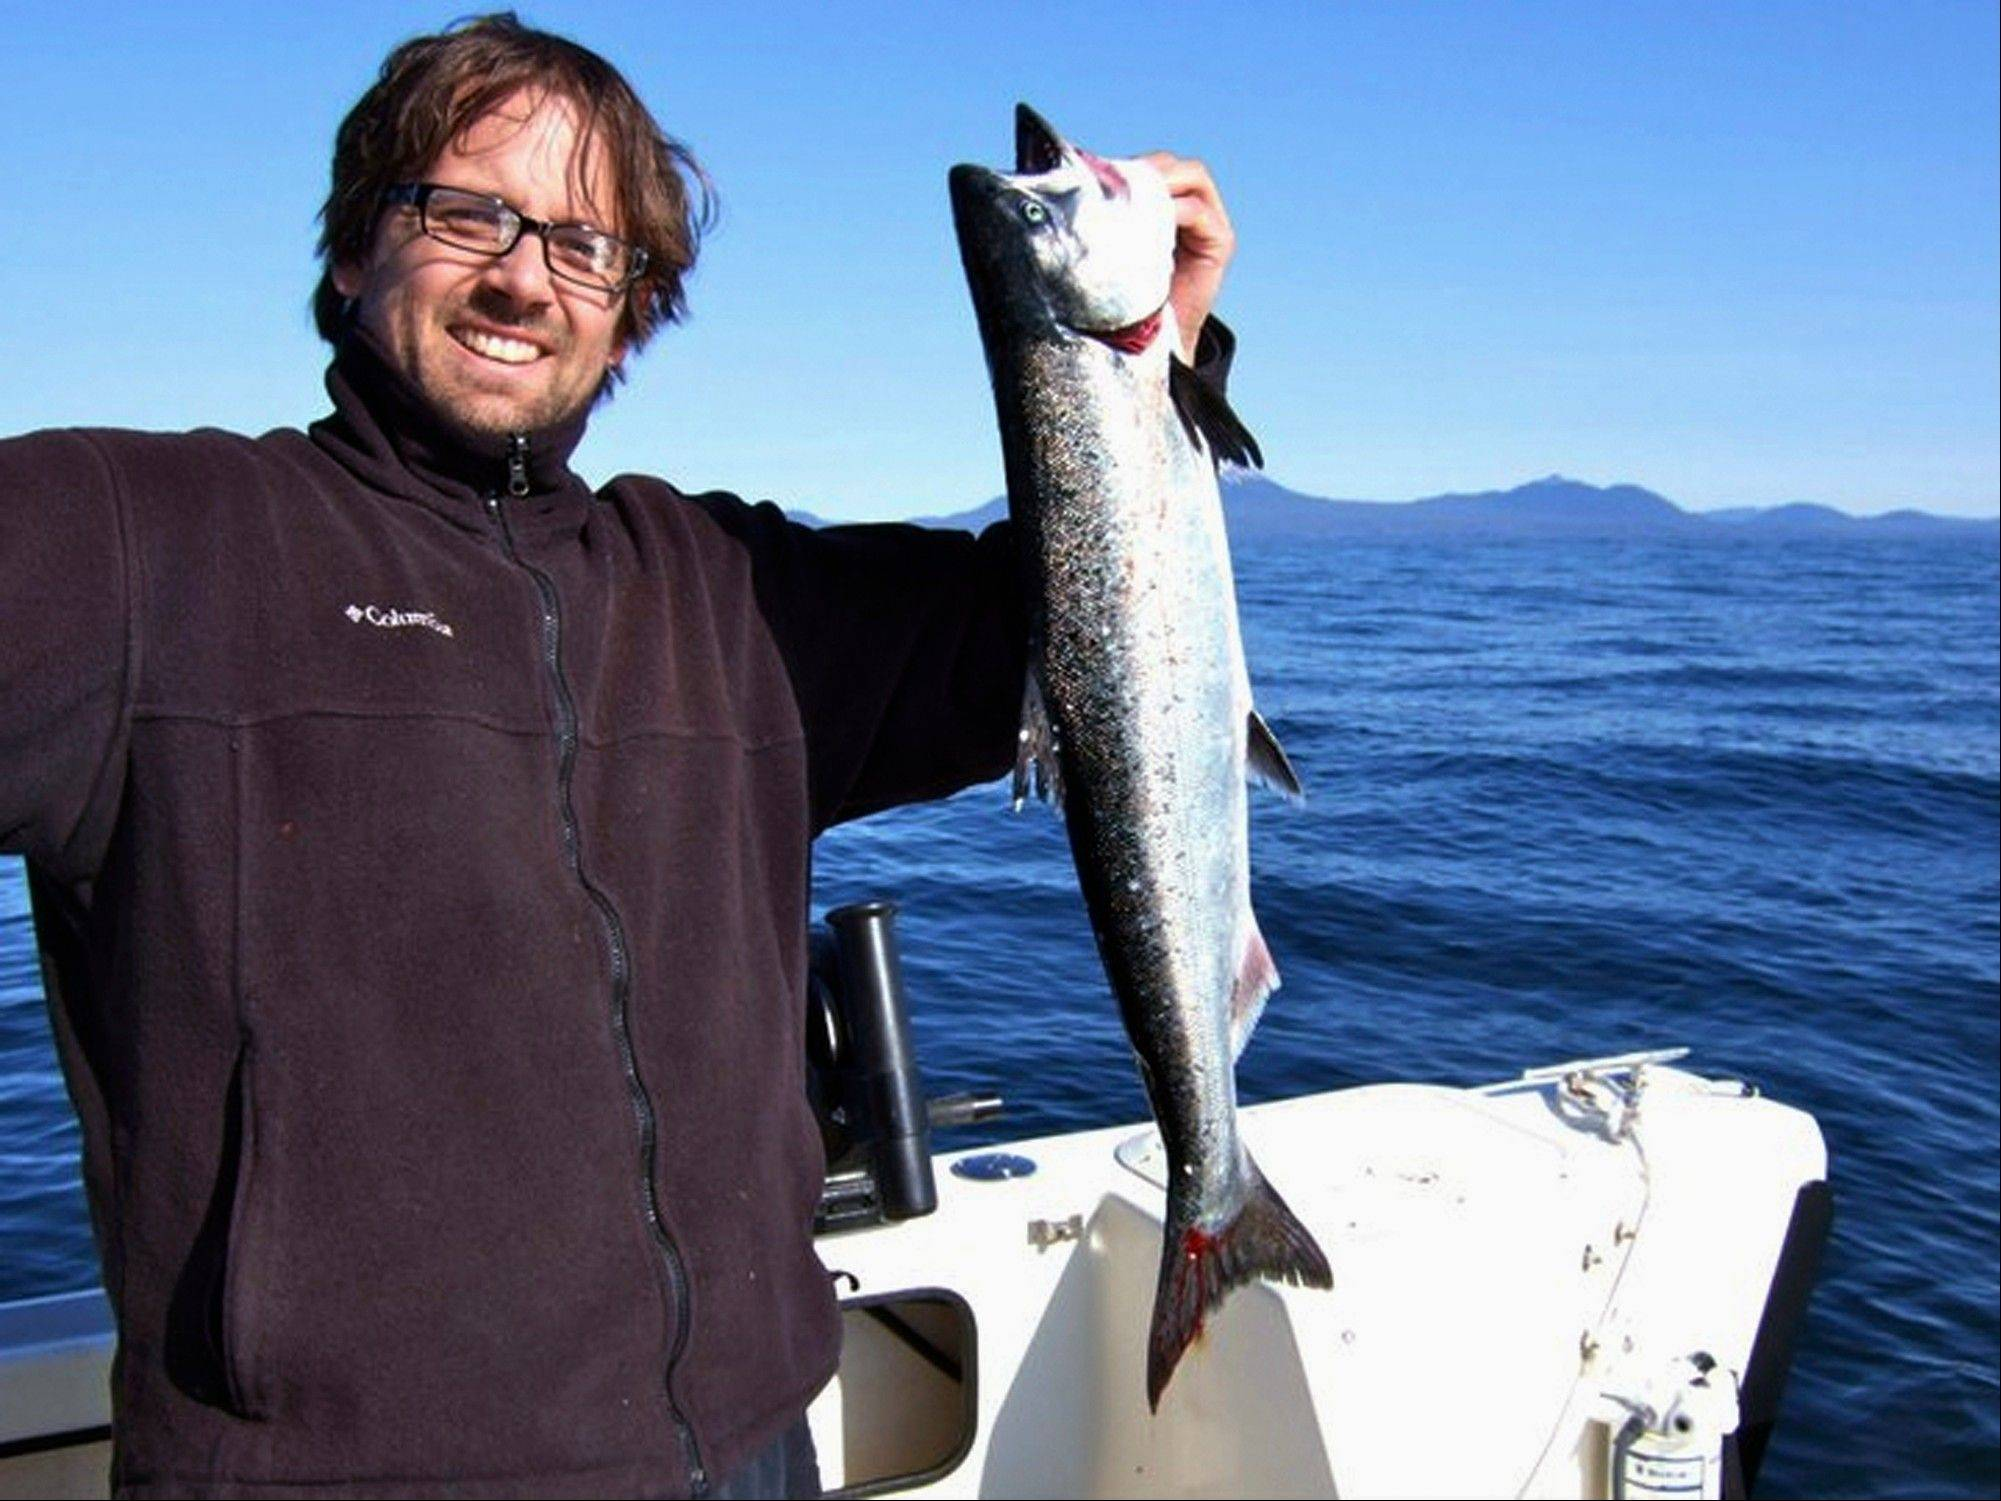 Nic Mink of Sitka Salmon Shares in Galesburg, Ill., holds up a freshly caught king salmon seven miles southwest of Sitka, Alaska. Mink is president of one of Galesburg's most successful start-up companies. Congressional opposition to an engineered fish has so far been led by members of the Alaska delegation, who see the modified salmon as a threat to the state's wild salmon industry.